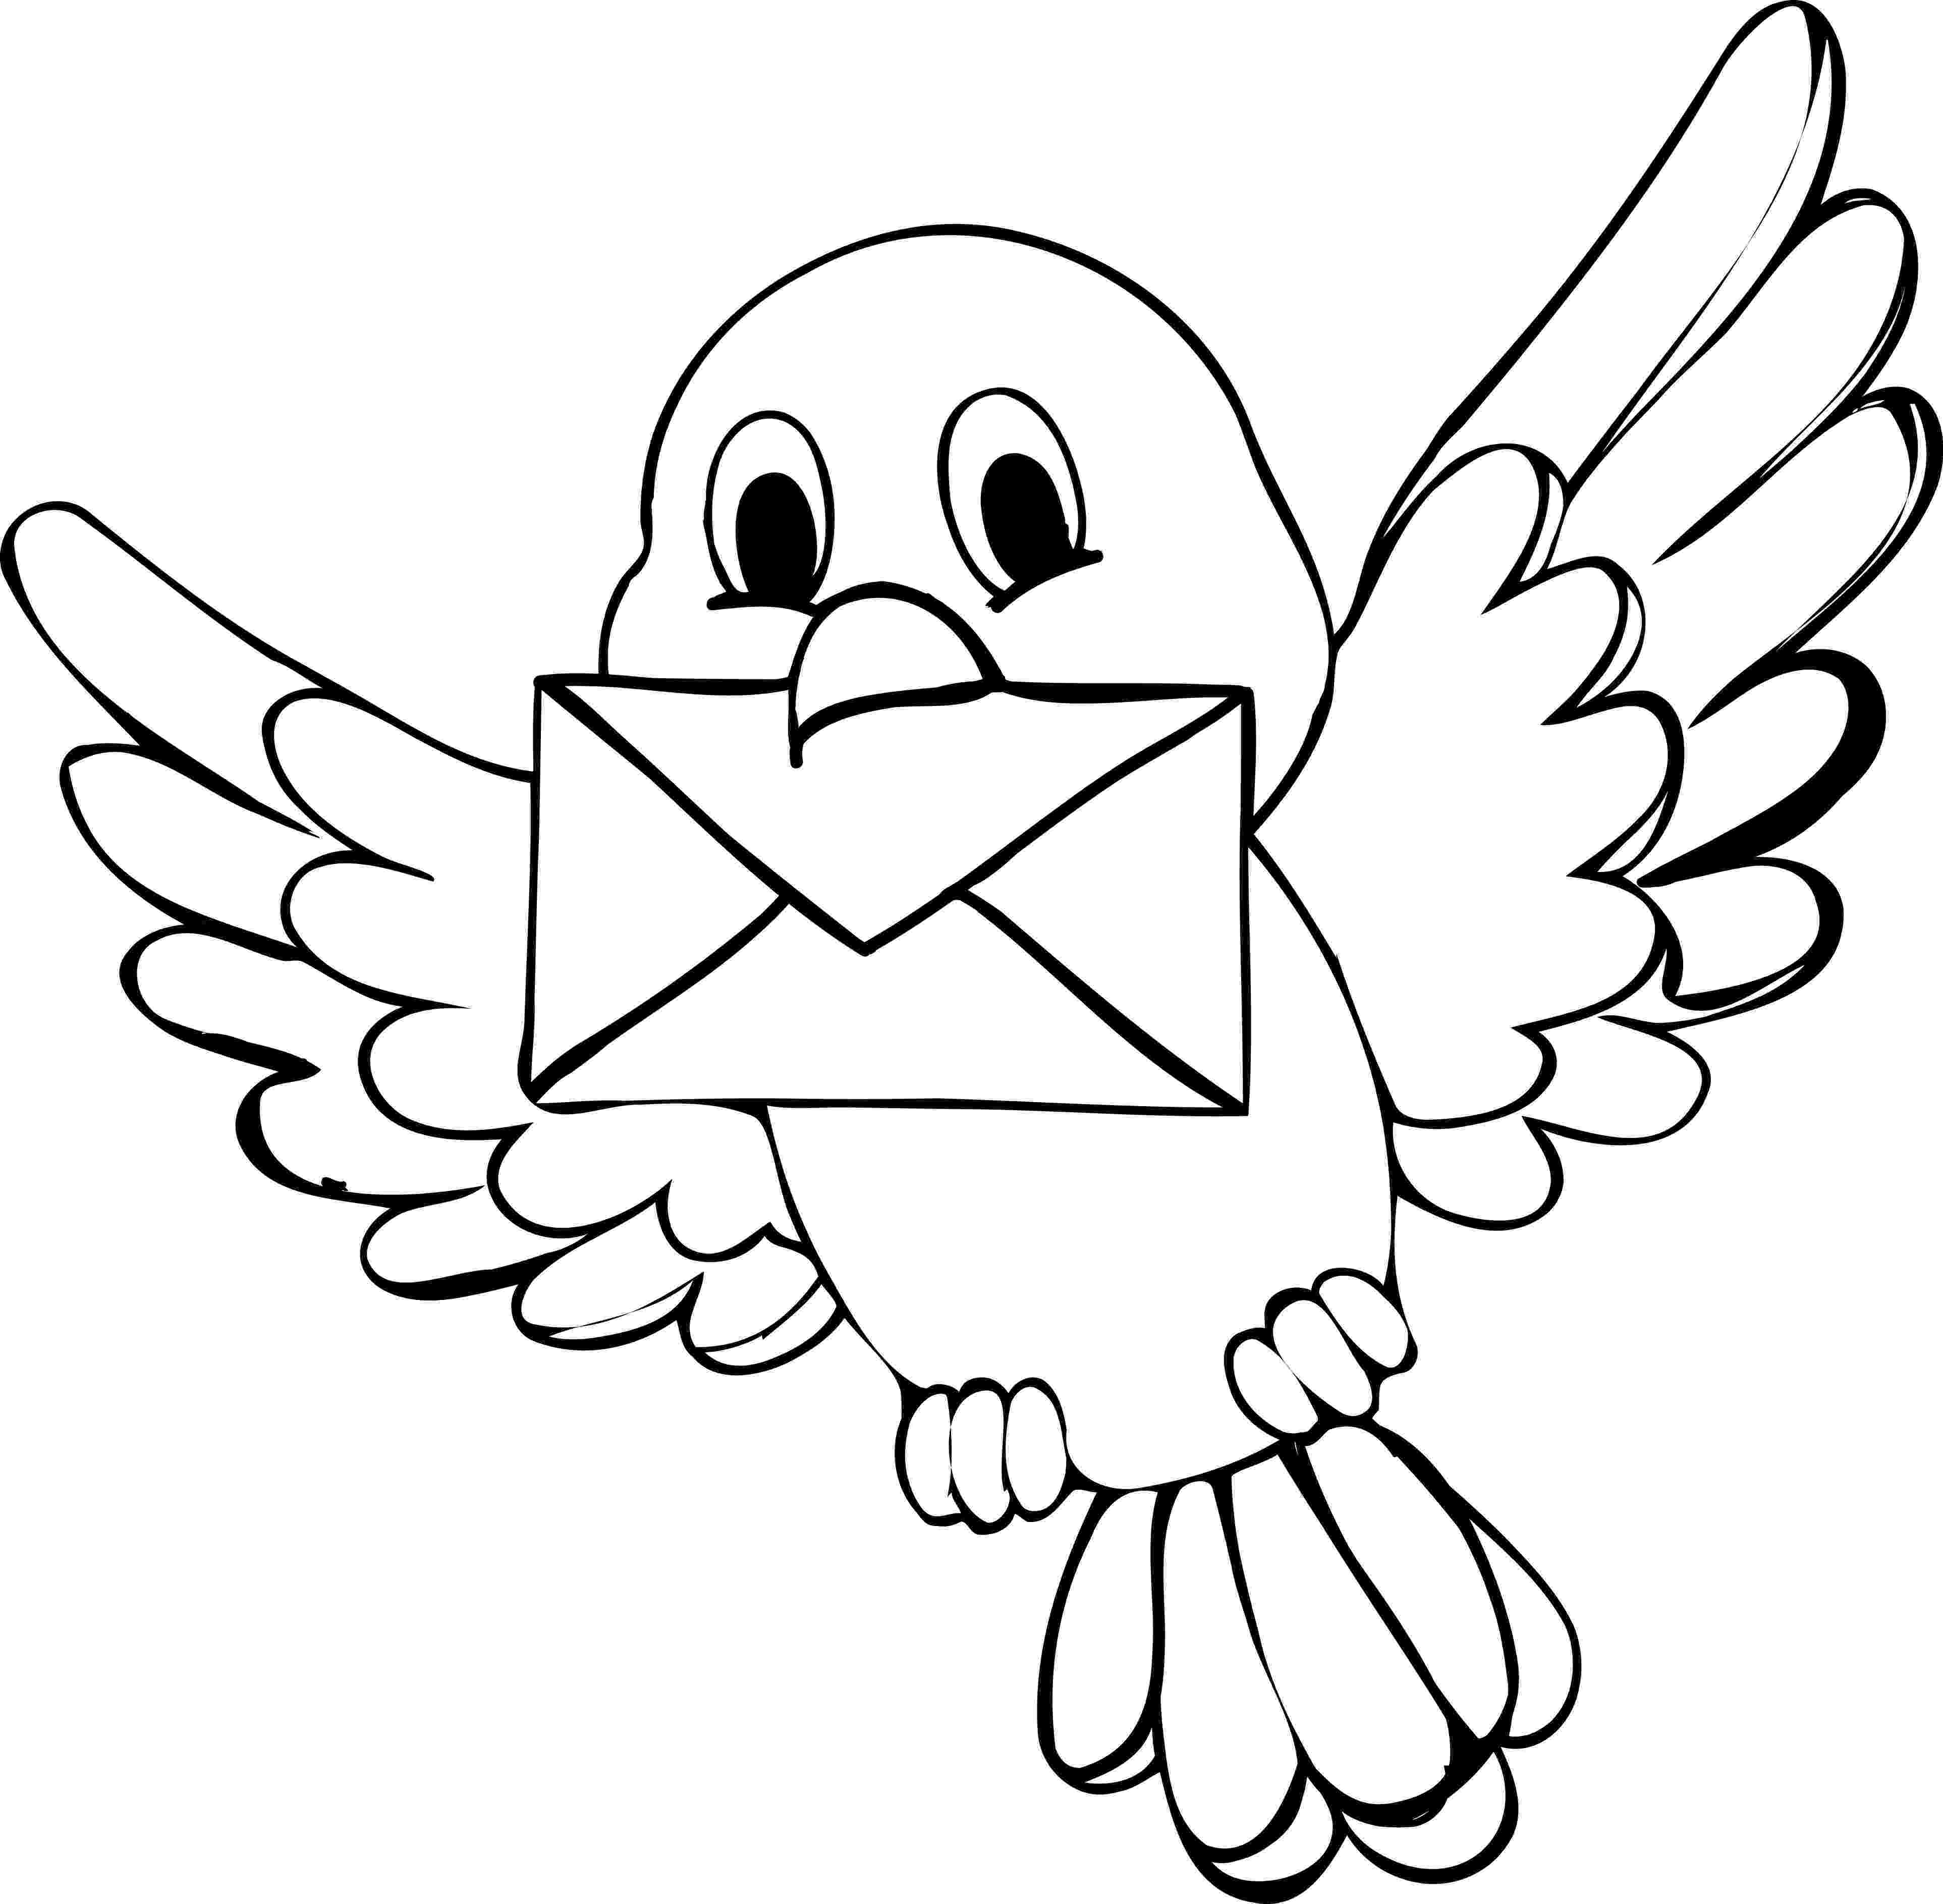 coloring book birds pictures bird coloring pages to download and print for free pictures book birds coloring